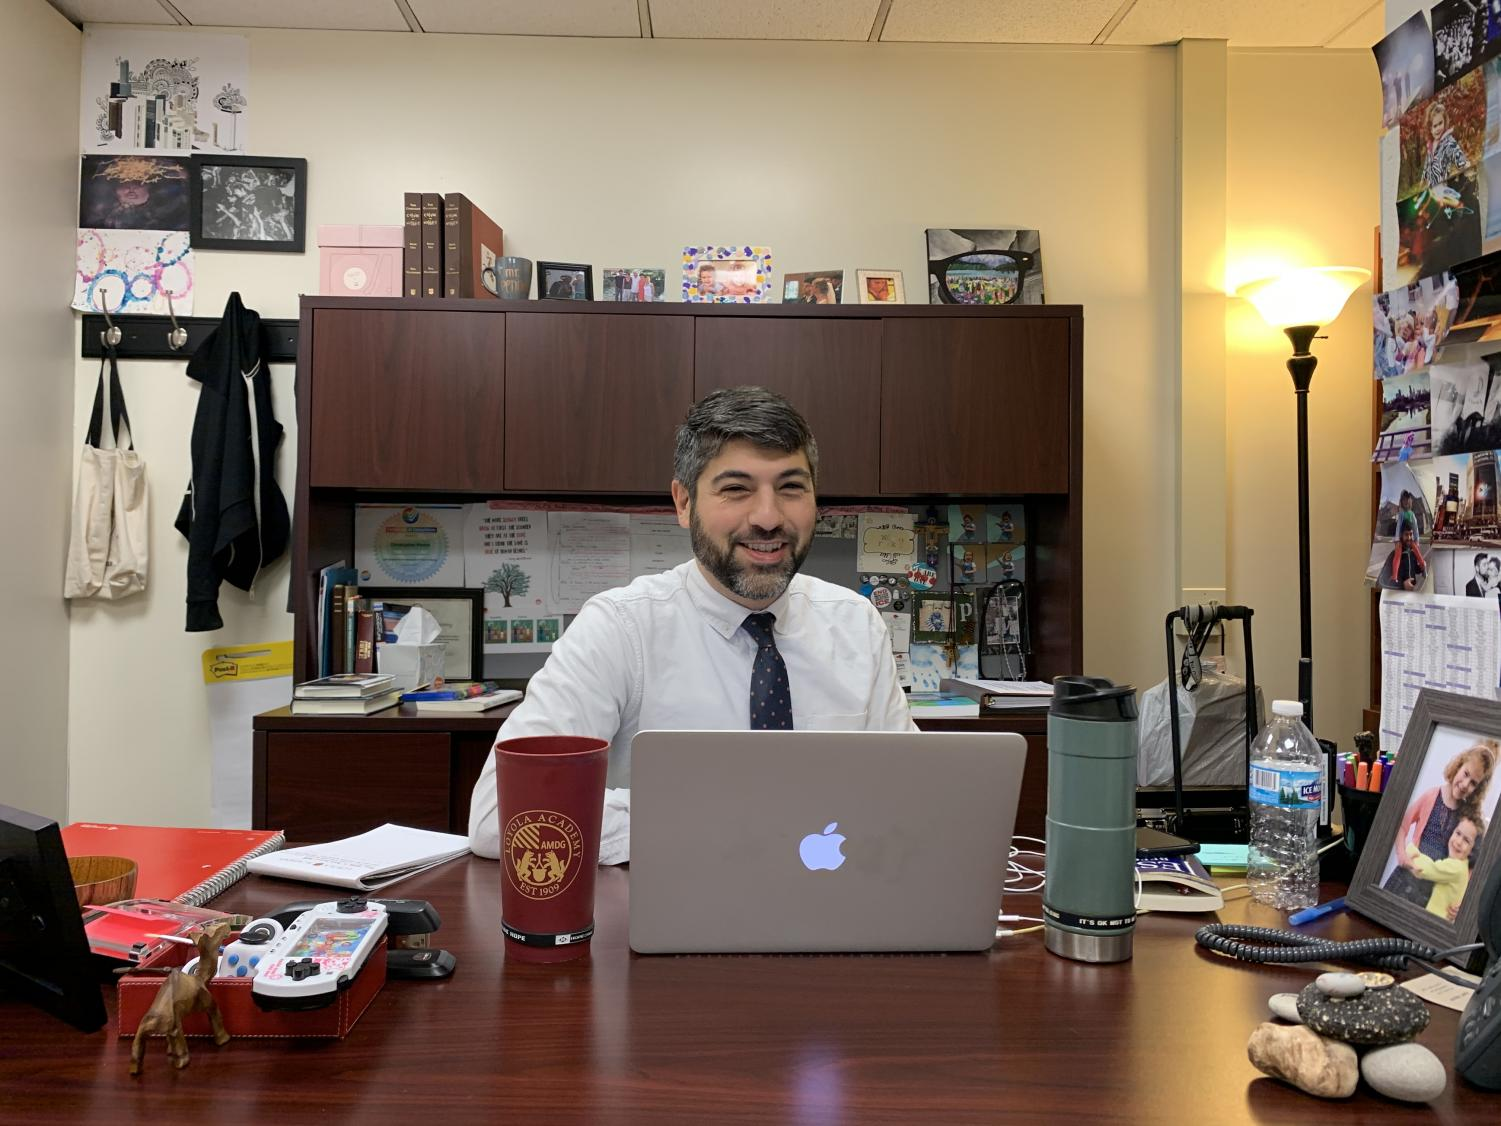 Mr. Penna, Loyola's Director of School Culture, in his office.